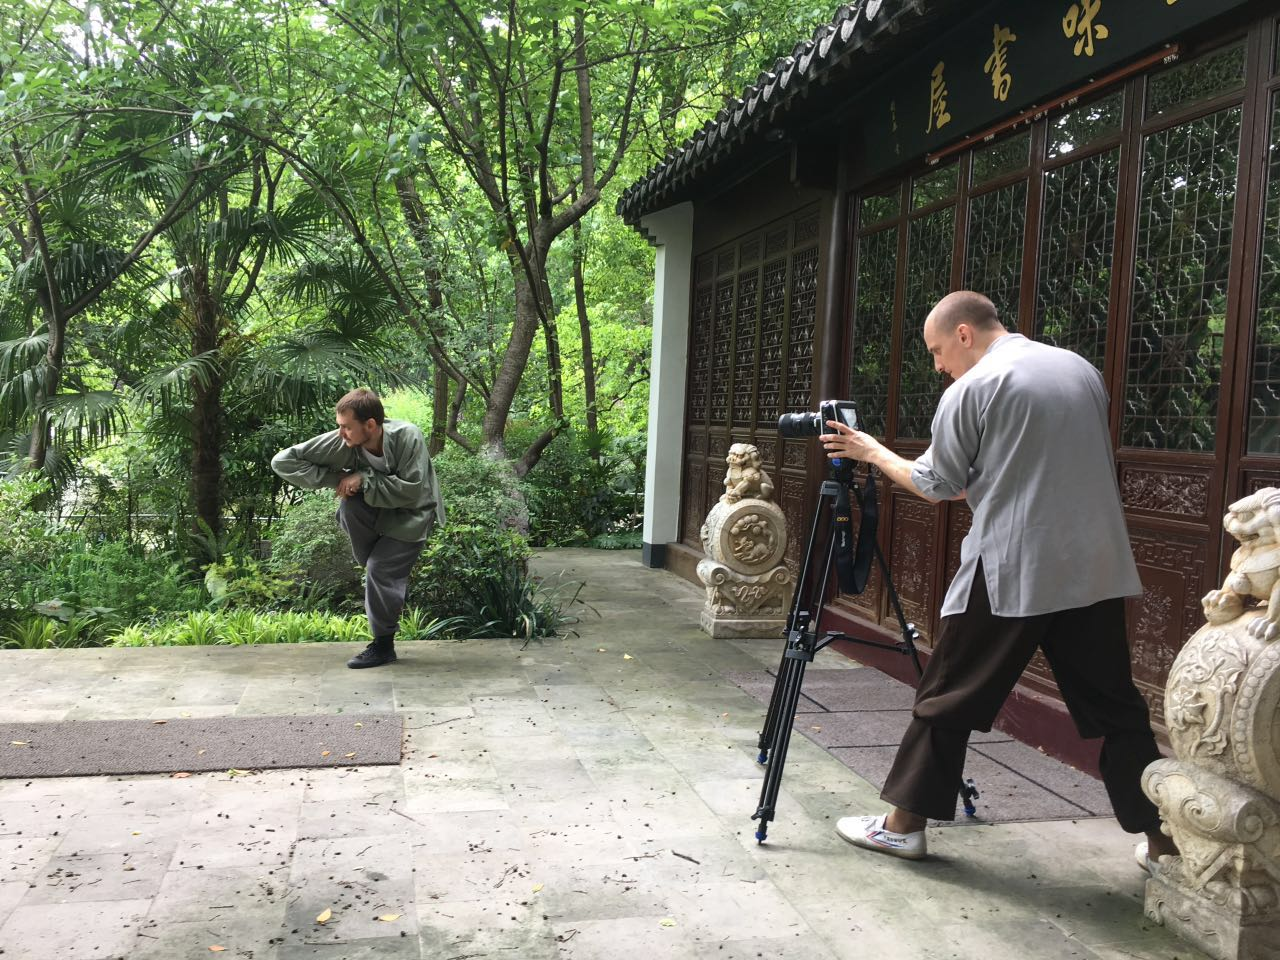 filming on set with Jiang Hu